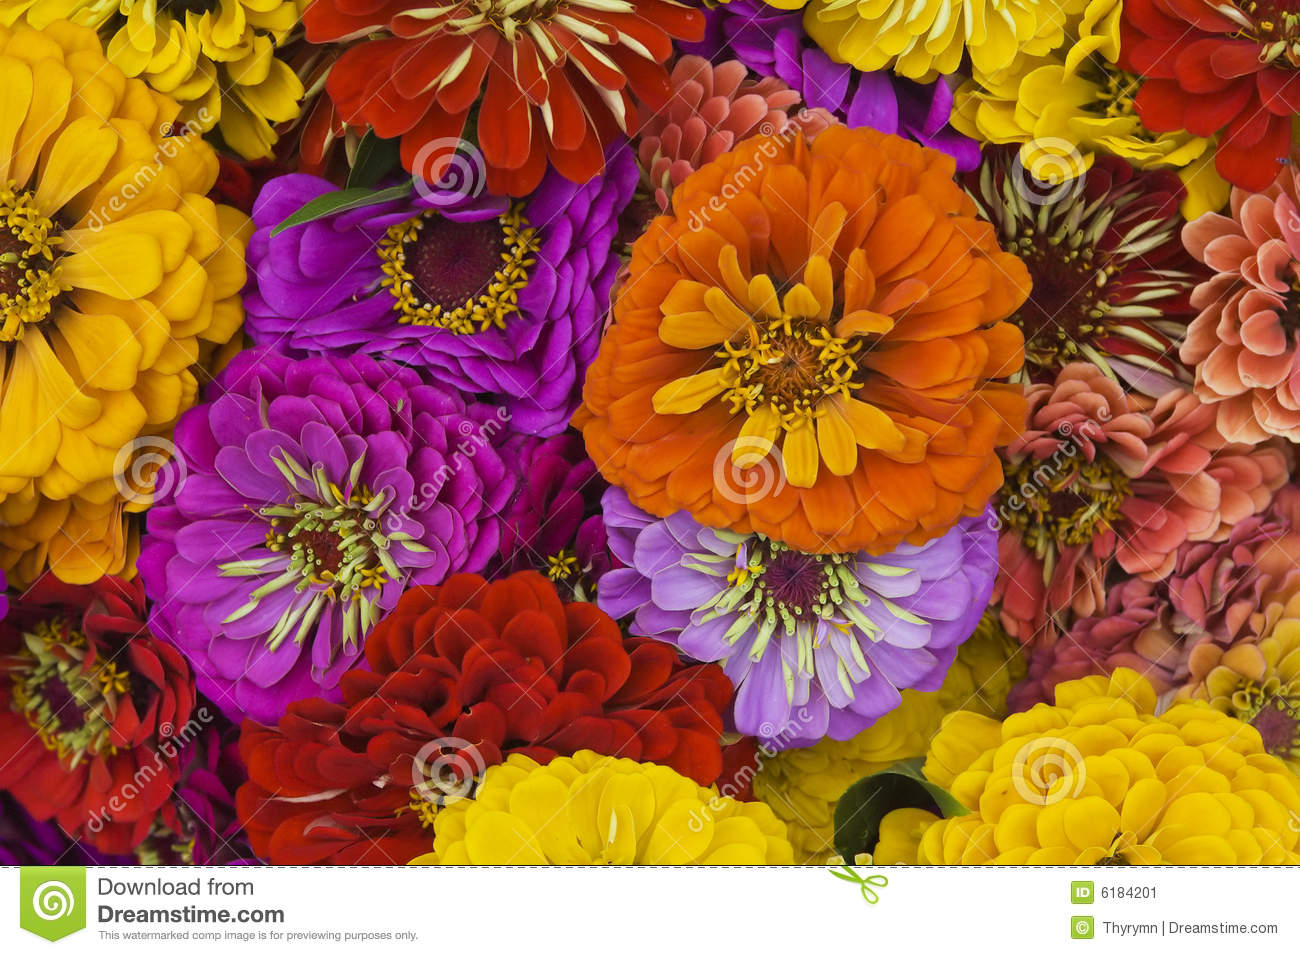 Bunch of flowers in a bouquet close up stock image image of download bunch of flowers in a bouquet close up stock image image of blossom izmirmasajfo